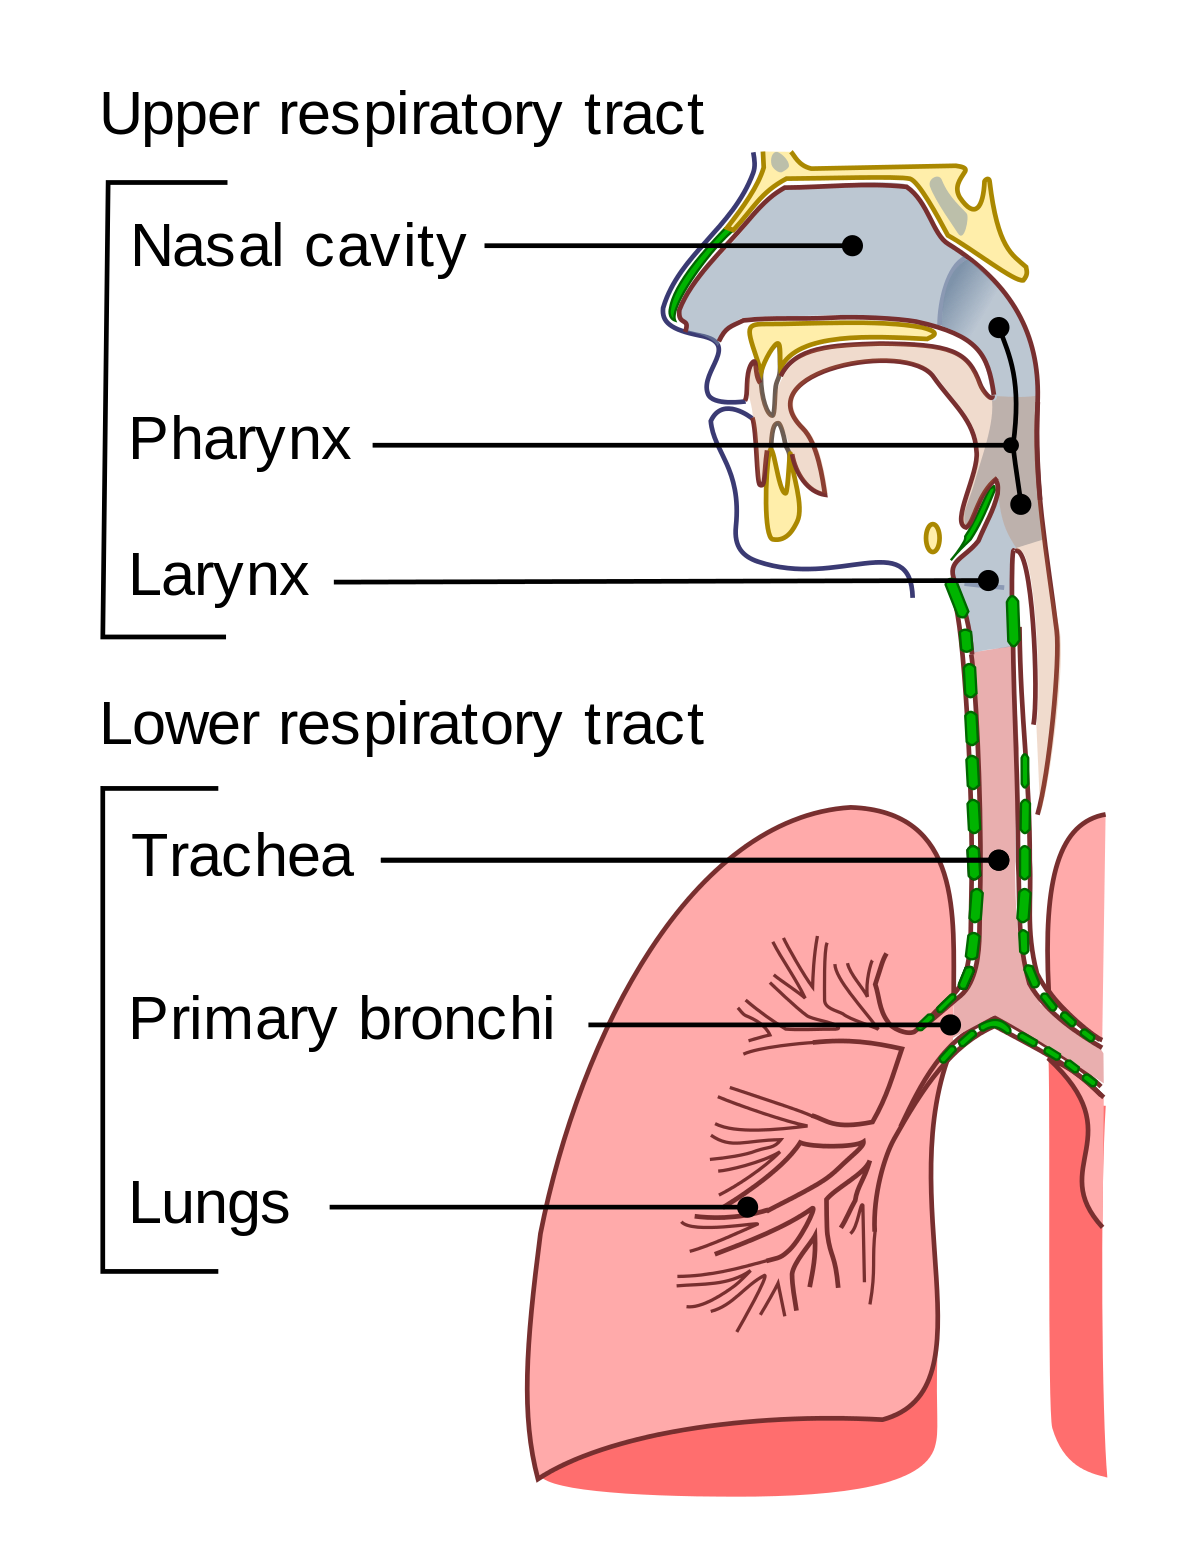 Upper tract wikipedia . Cold clipart respiratory infection